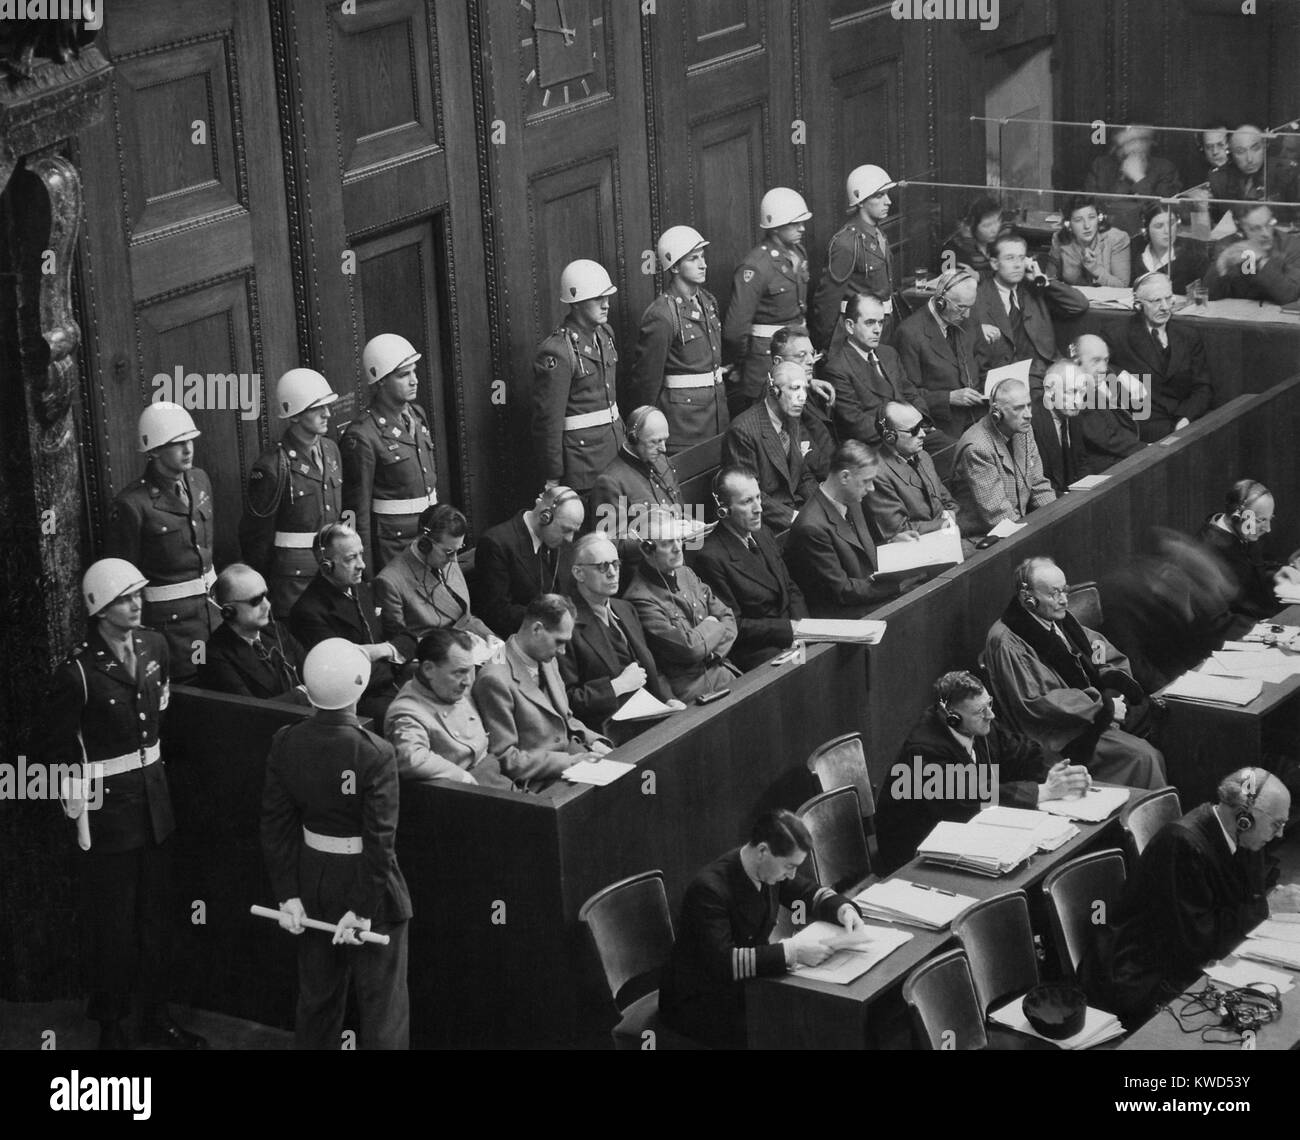 Former Nazi Germany's military and political leaders on trial at Nuremberg. They were prosecuted for waging aggressive Stock Photo